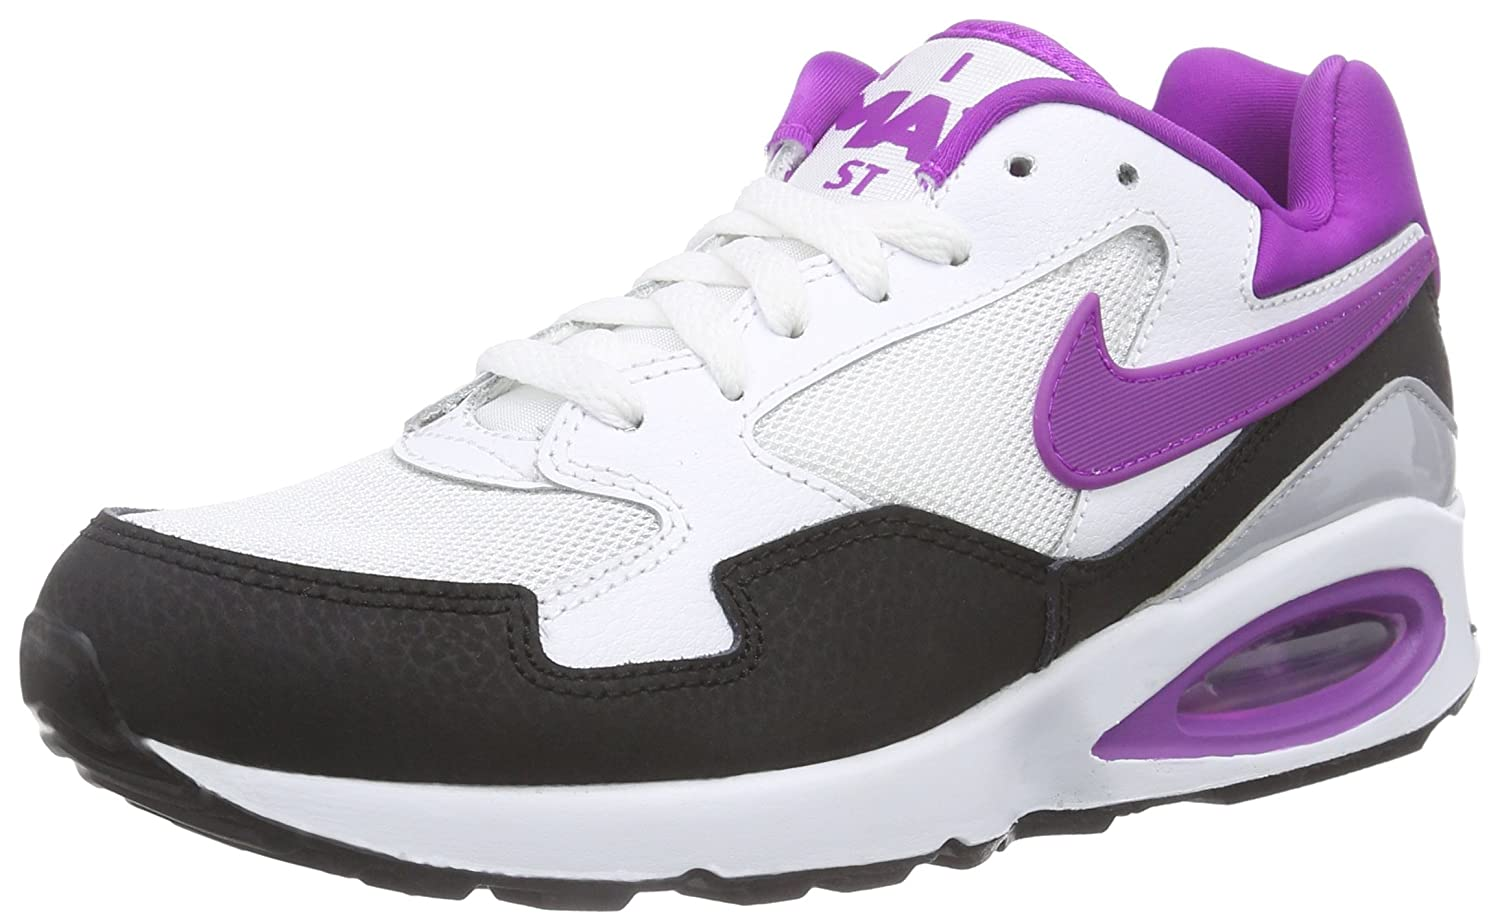 nnwqa Nike Air Max ST, Women\'s Low-Top Sneakers: Amazon.co.uk: Shoes & Bags